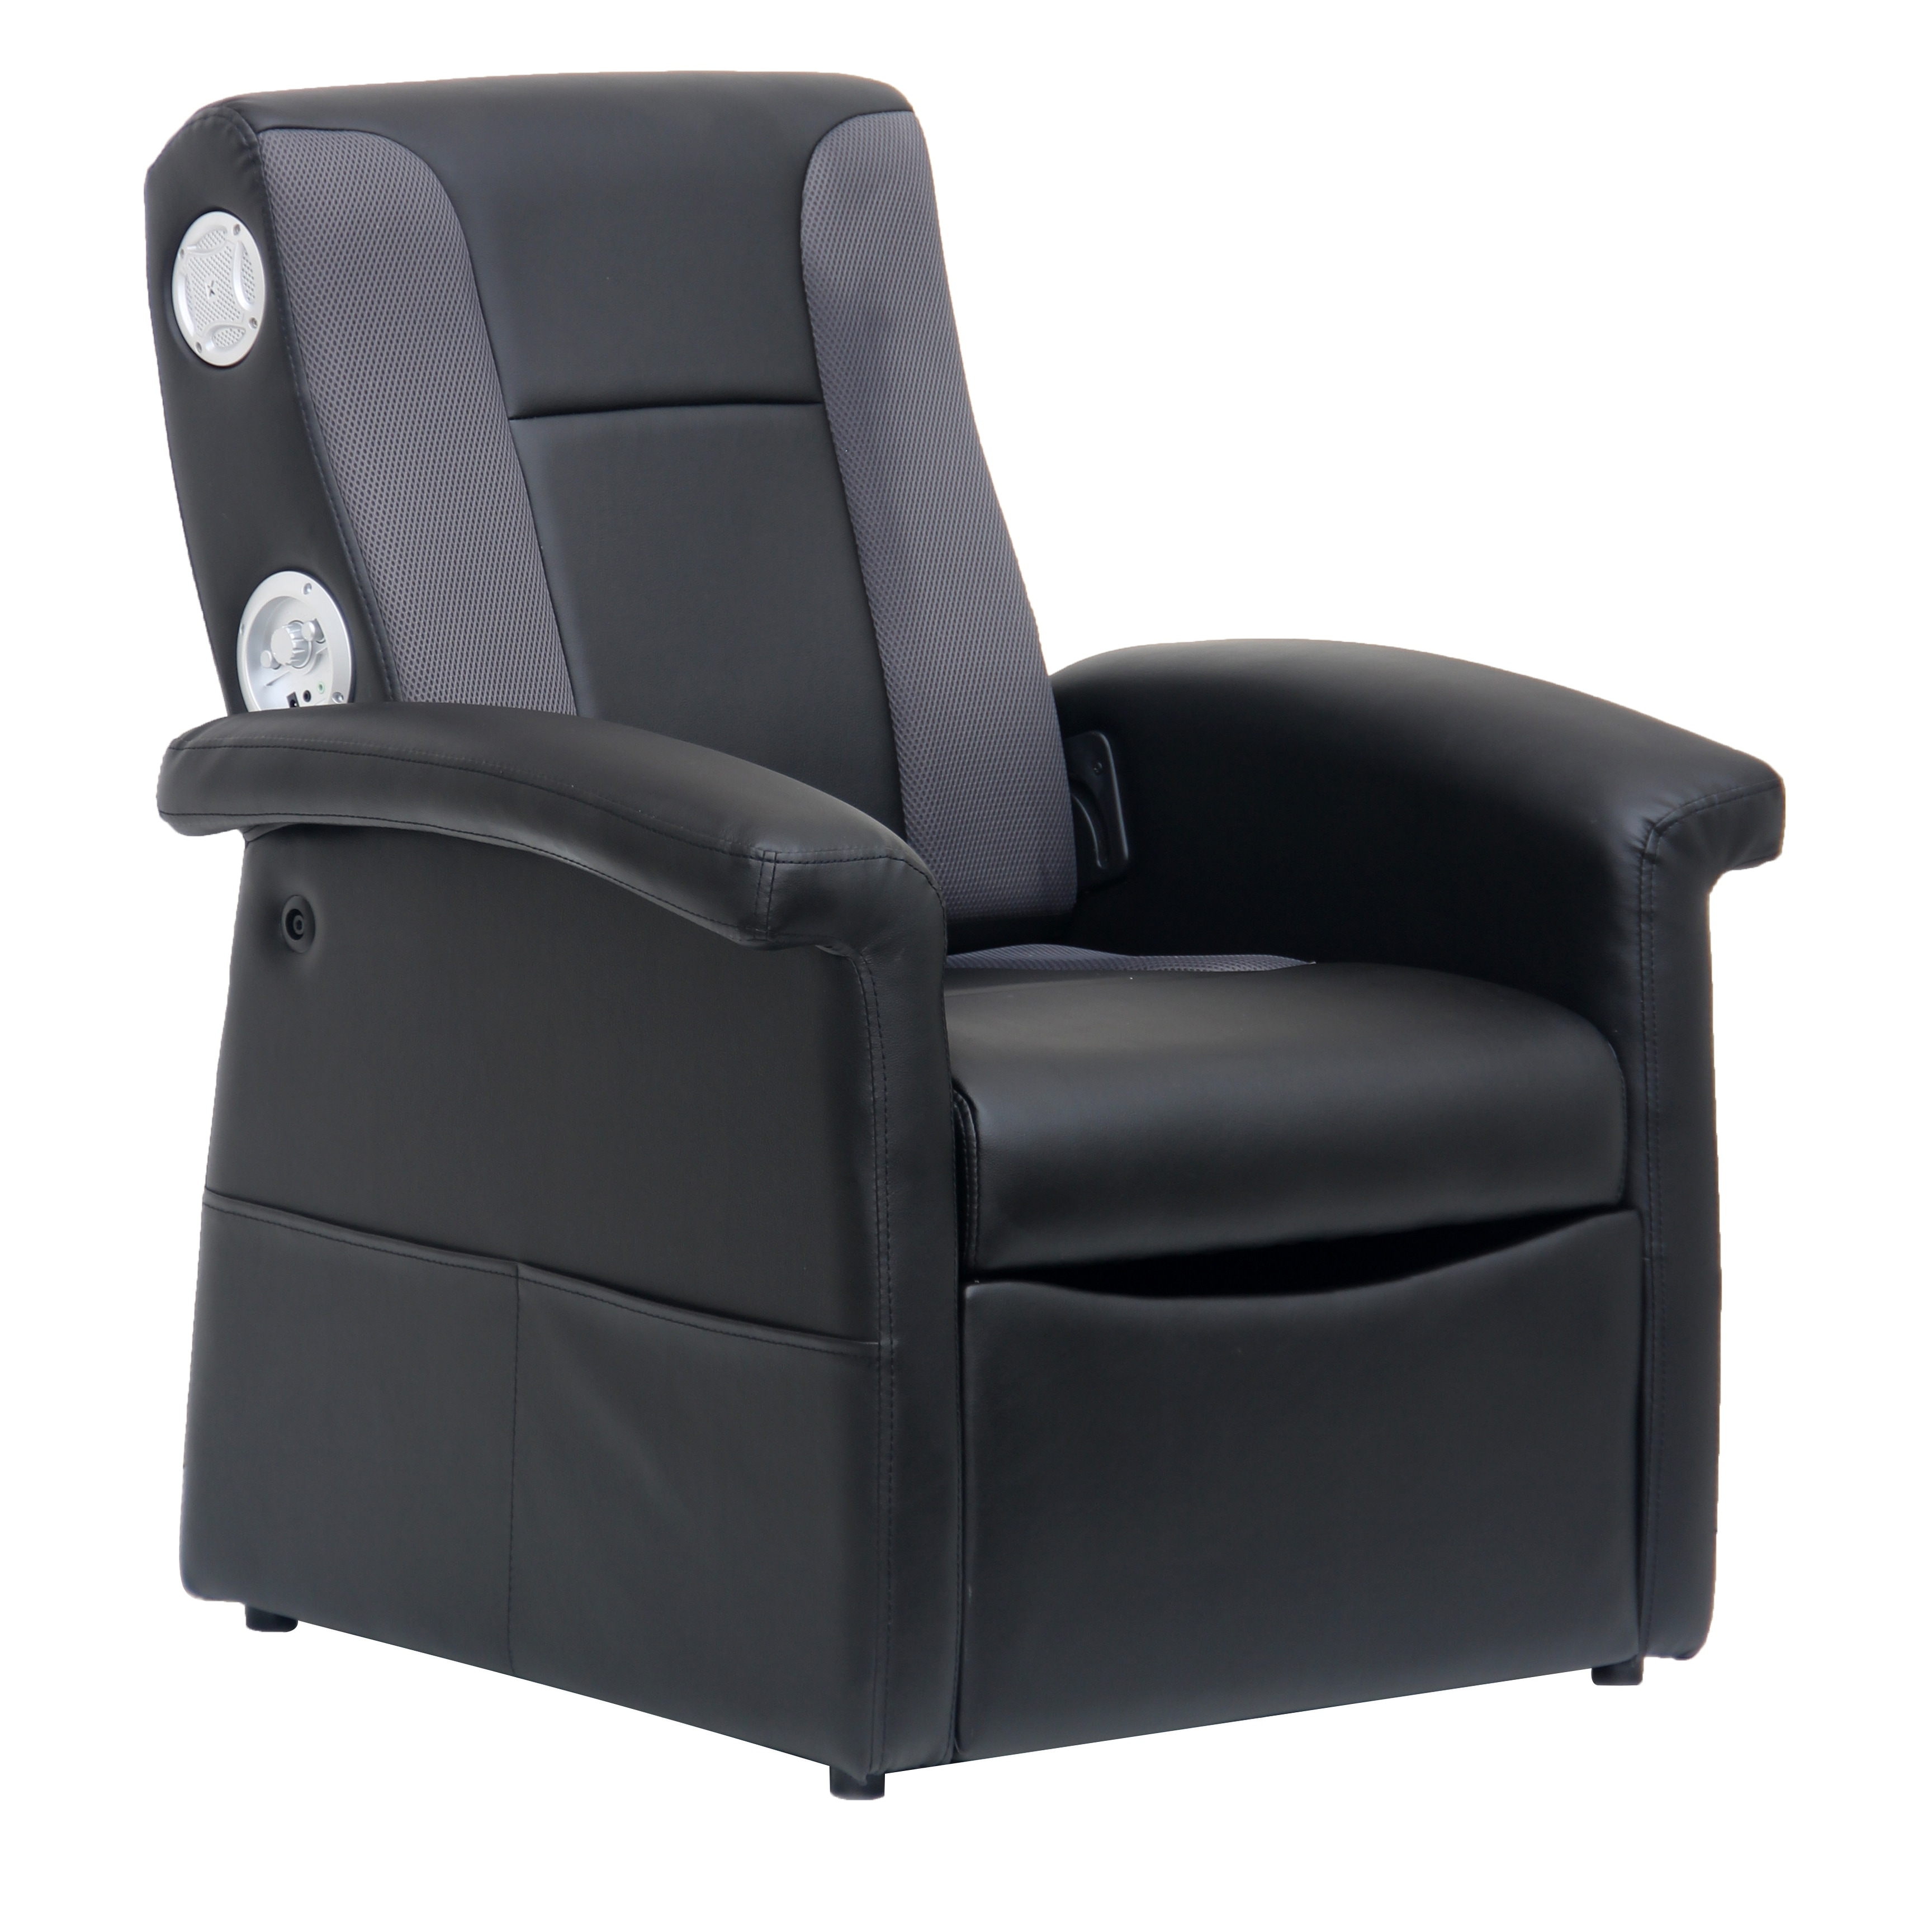 X Rocker Junior Triple Flip 2 1 Wired Audio Foldable Gaming Chair Home Theater With Subwoofer Armrests Storage Ottoman Black On Sale Overstock 32202343